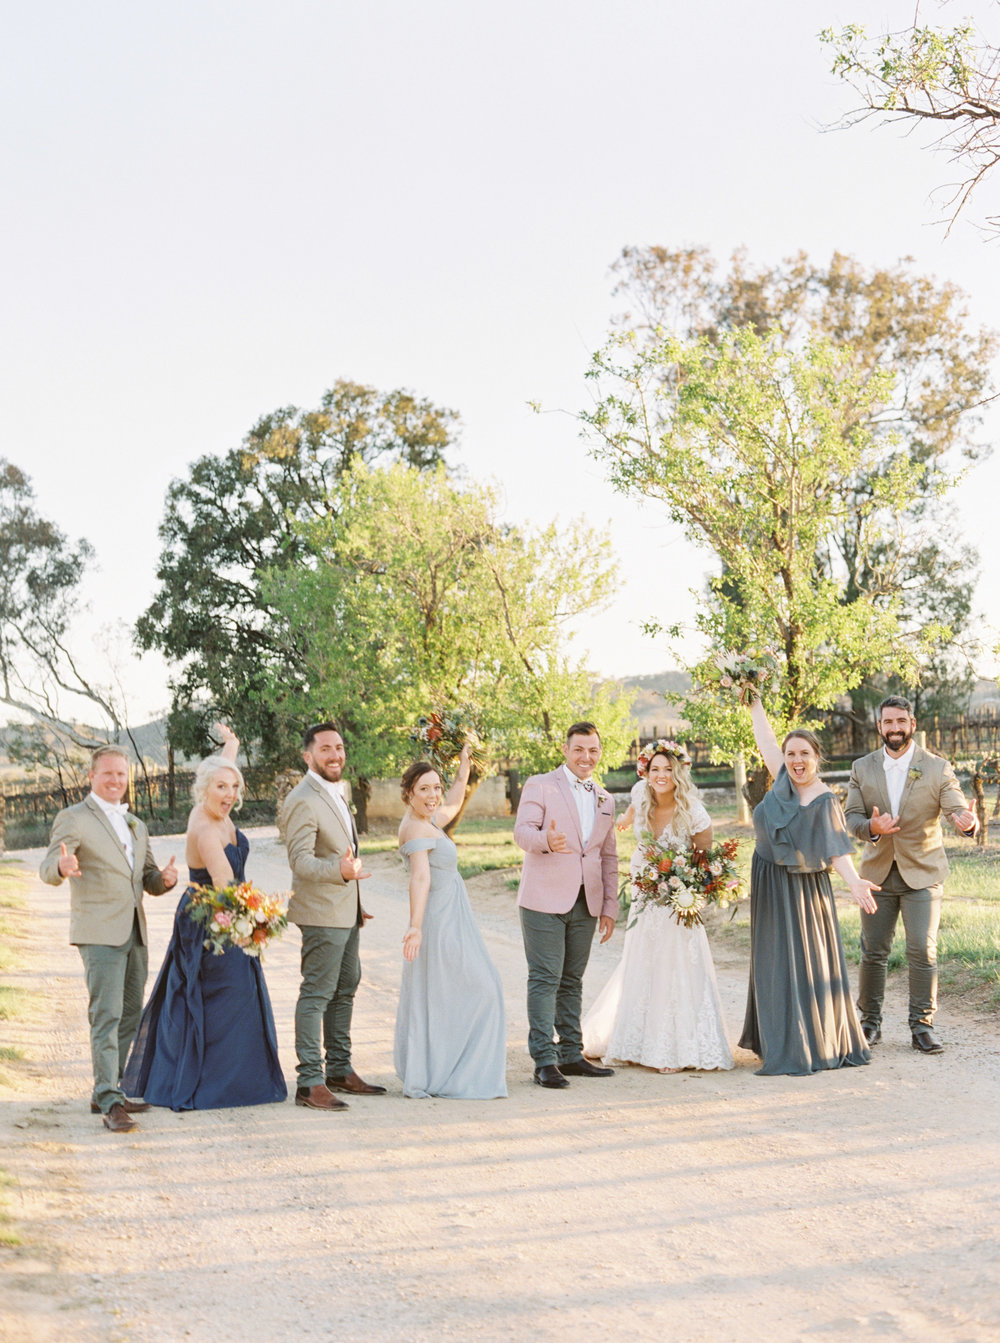 00760- Fine Art Film Mudgee Hunter Valley NSW Wedding Photographer Sheri McMahon.jpg